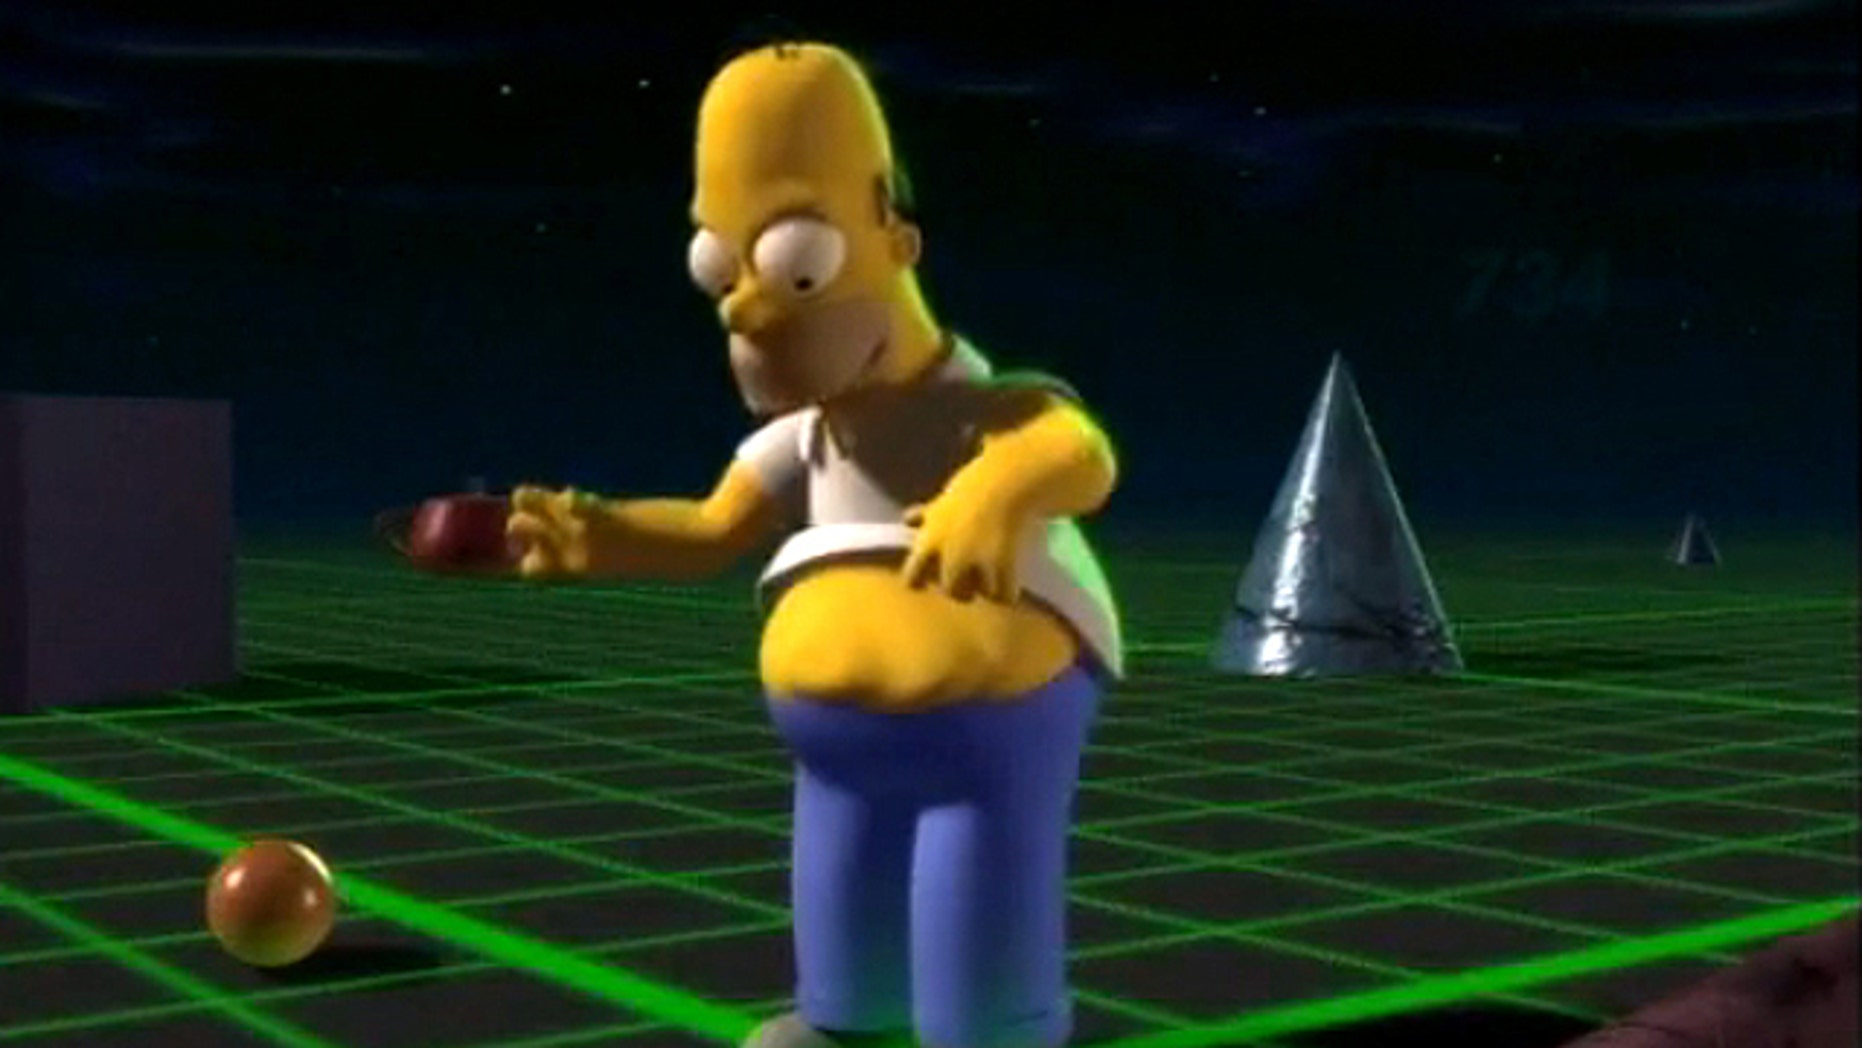 Homer discovered a third dimension in Treehouse of Horror VI. For us, CERN scientists could be close to confirming the existence of extra dimensions beyond the classical four (length breadth, dept, and time).